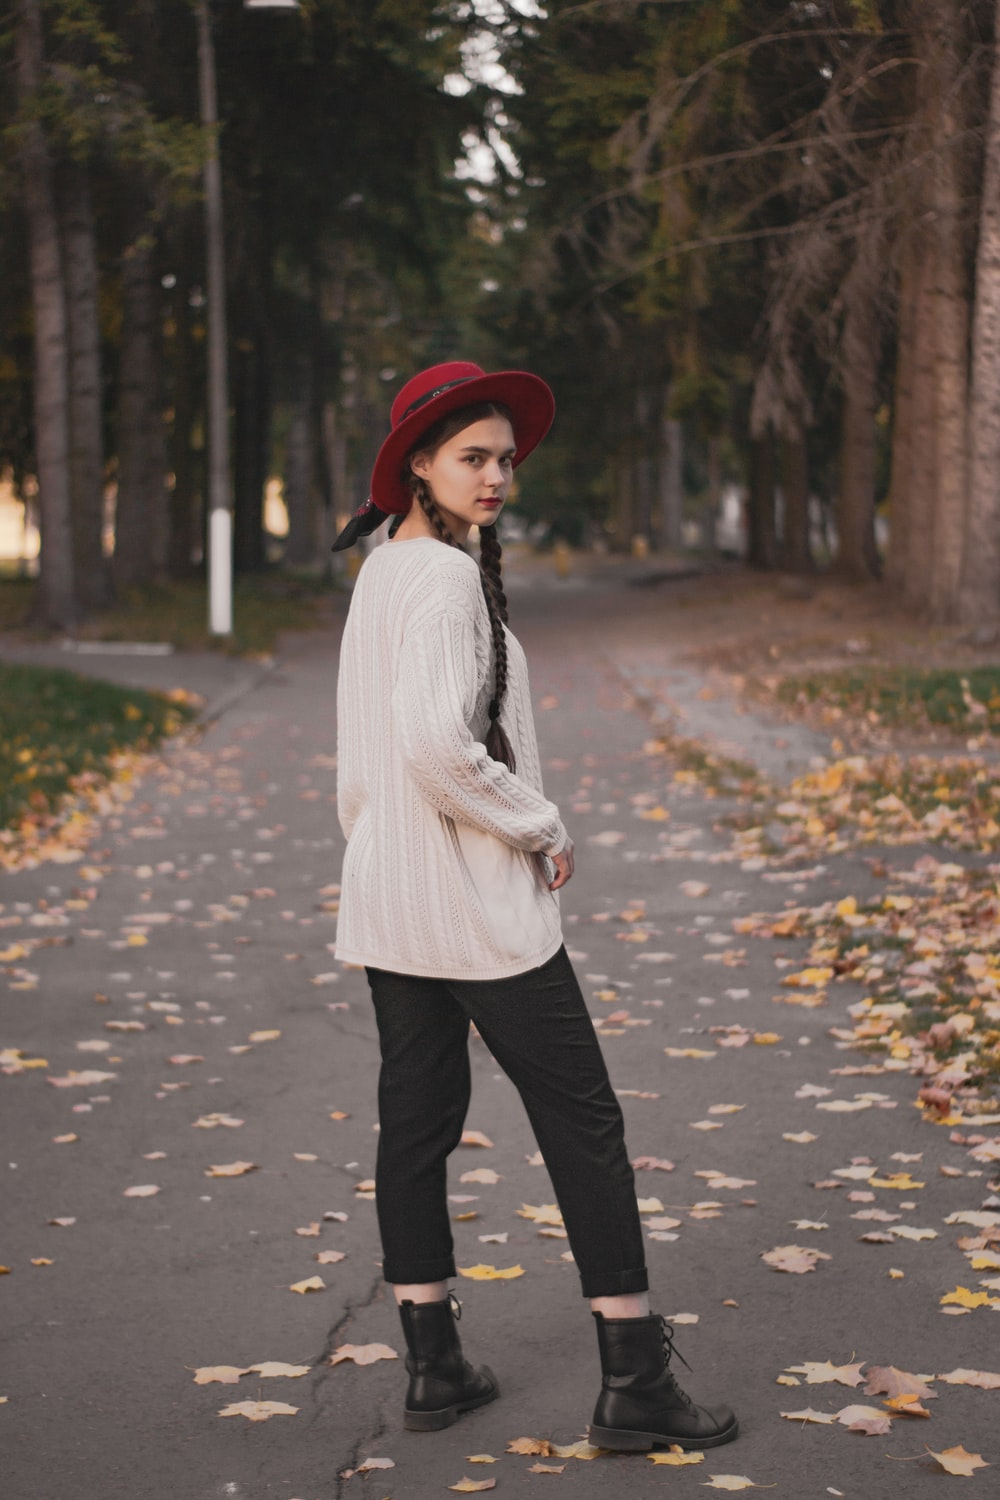 woman in white sweater and black pants standing on road during daytime